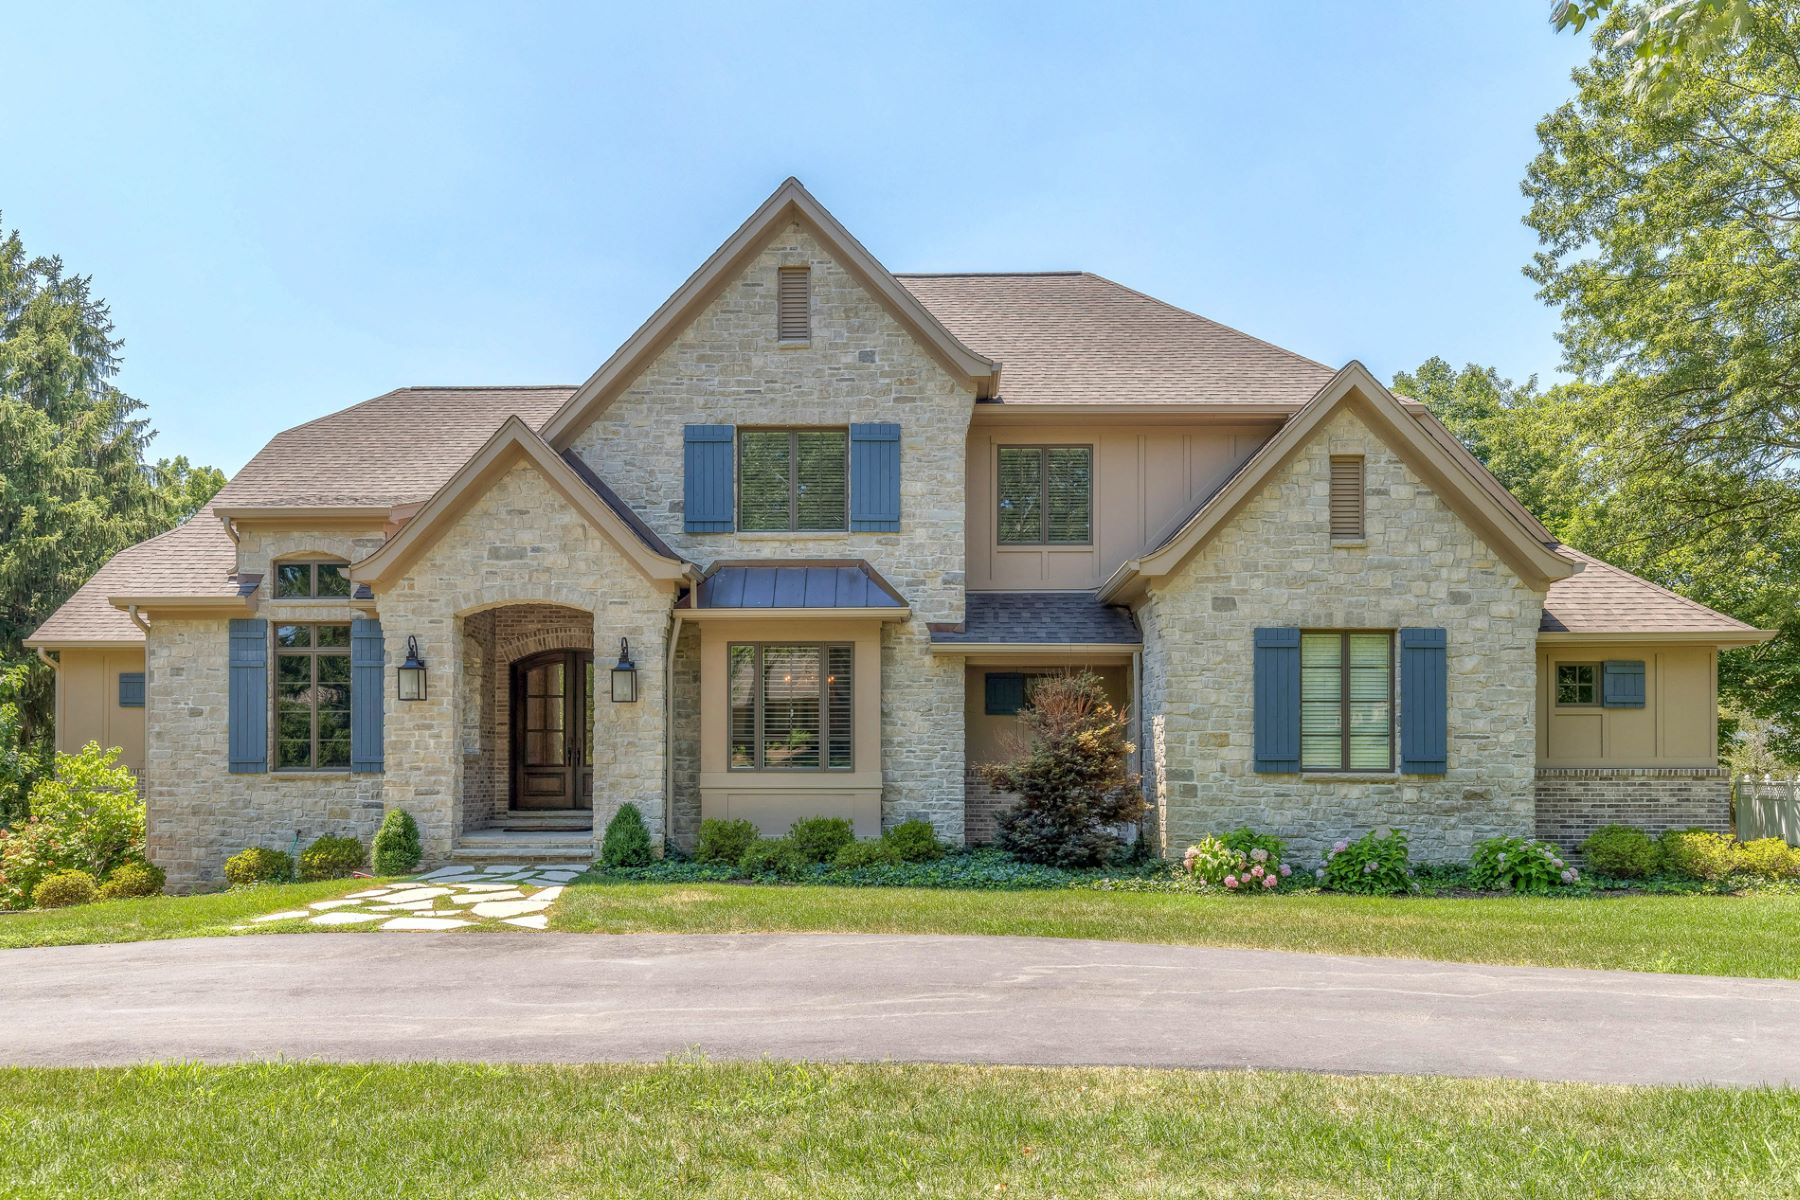 Single Family Home for Sale at South Graeser Rd 169 South Graeser Rd Creve Coeur, Missouri 63141 United States